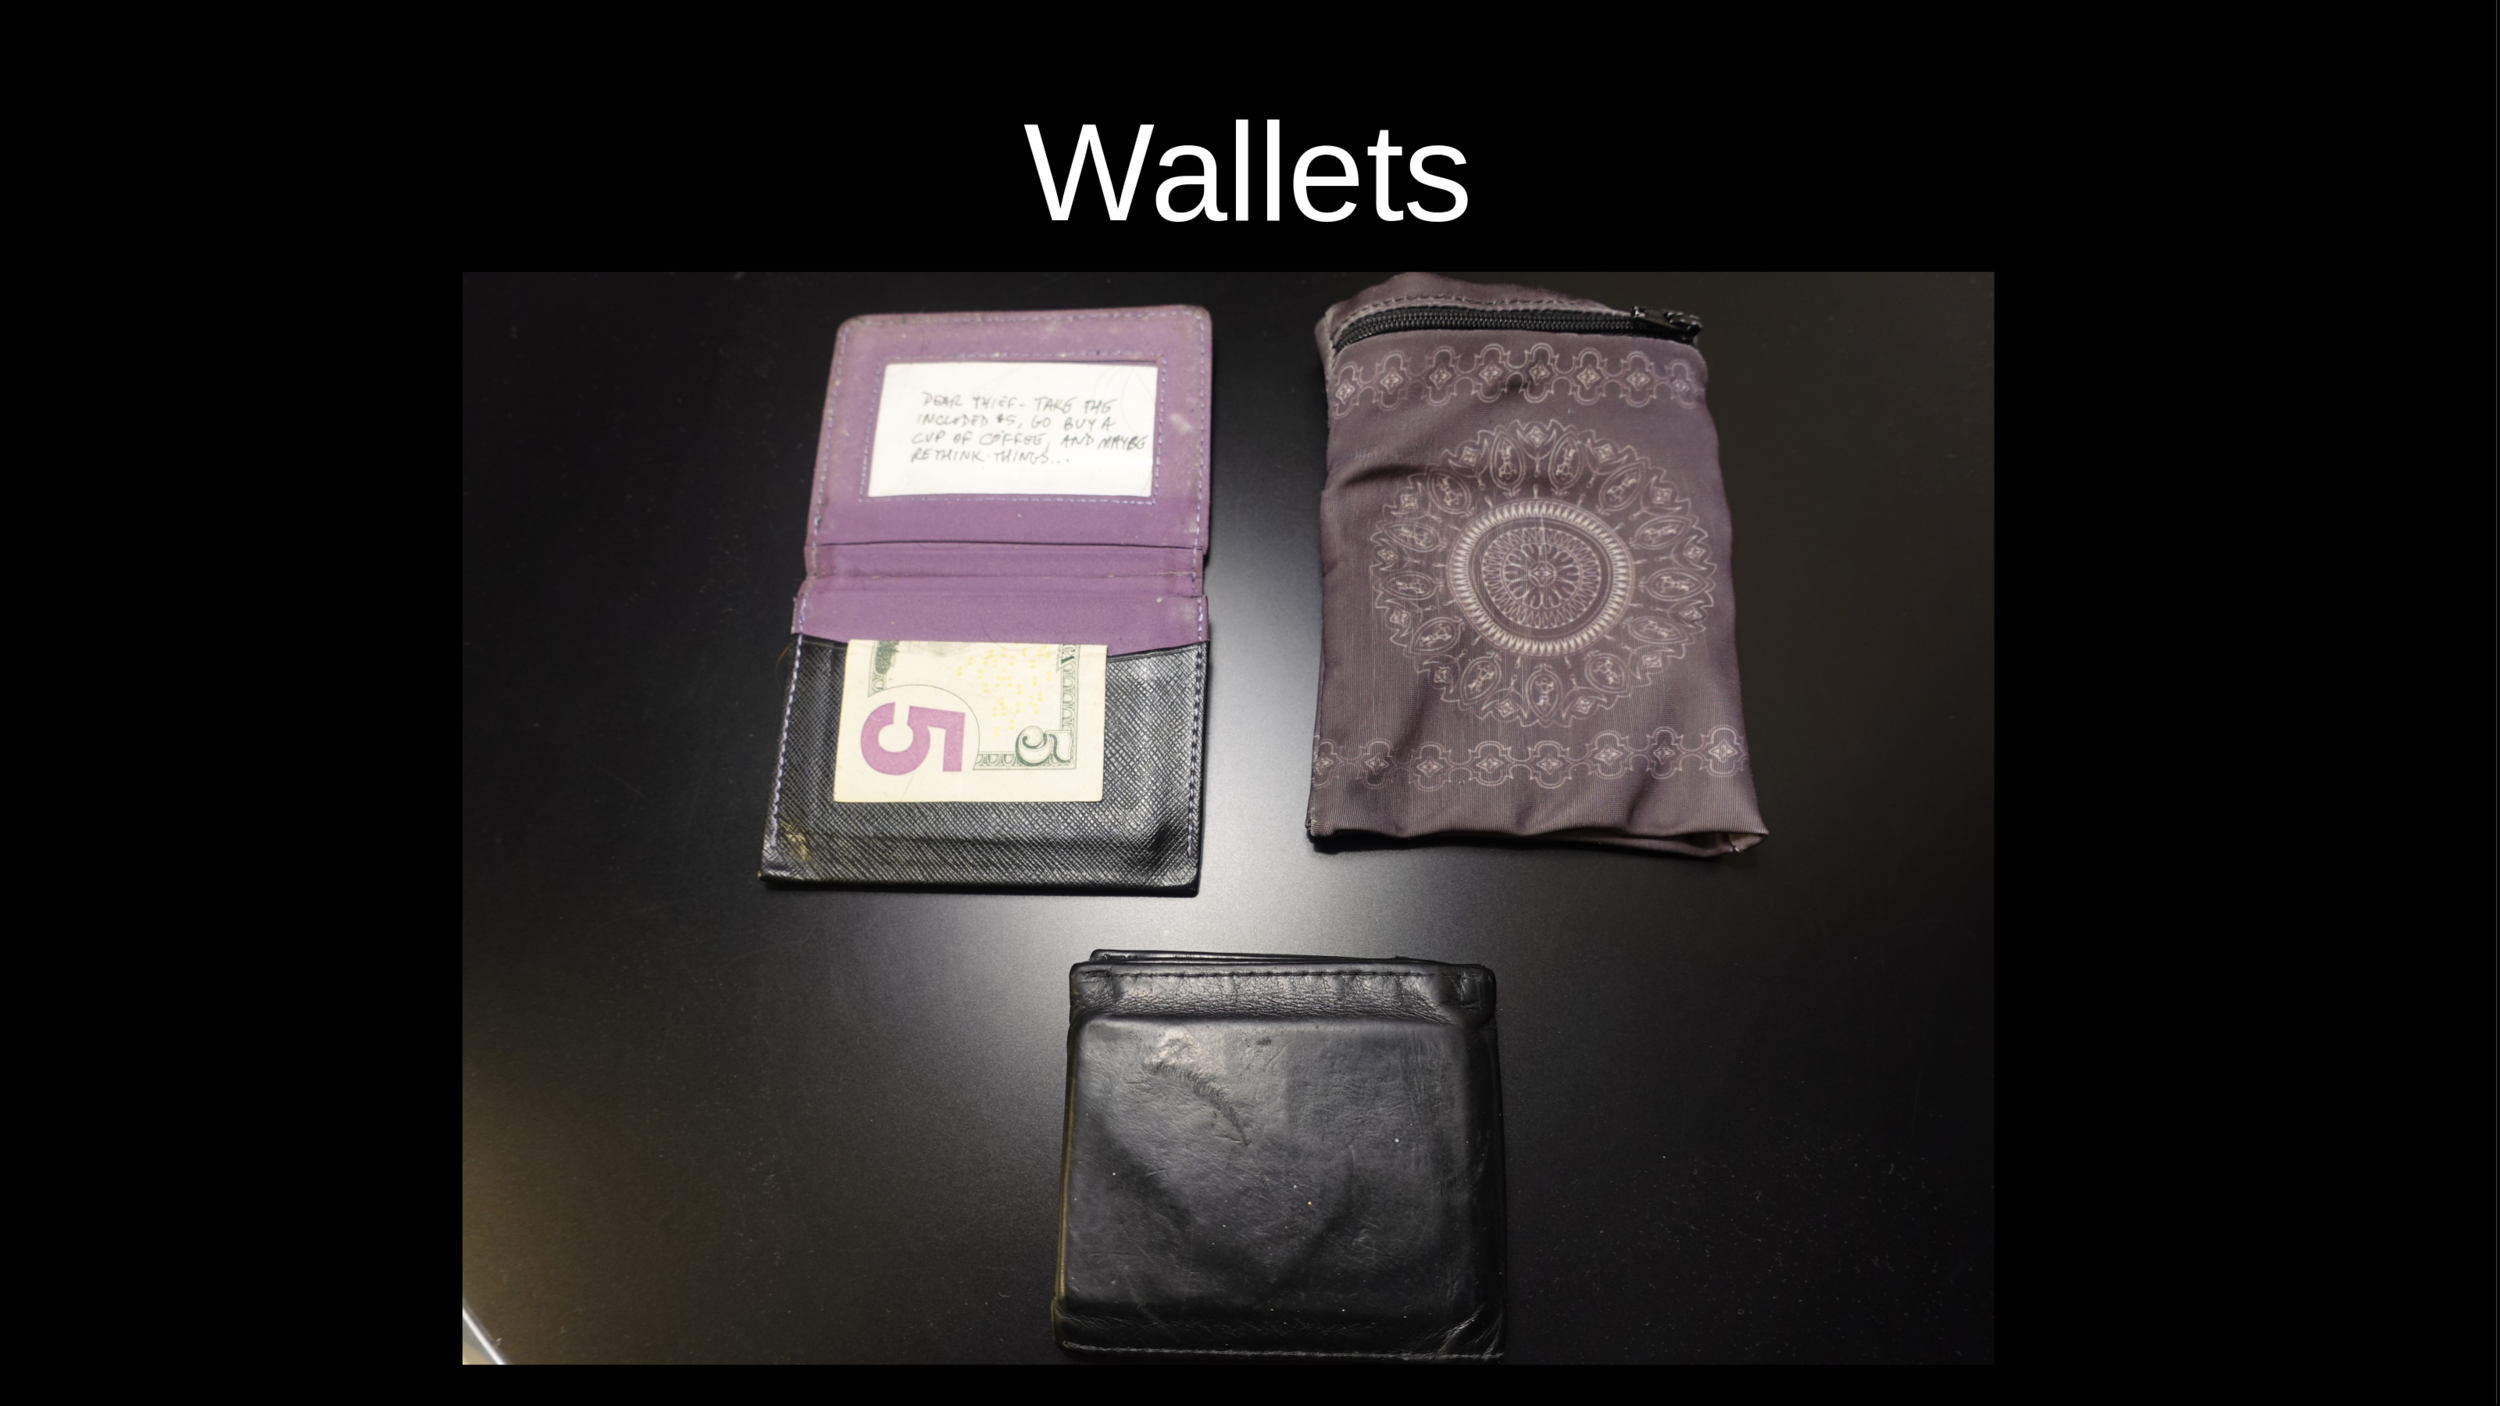 14-wallets.png